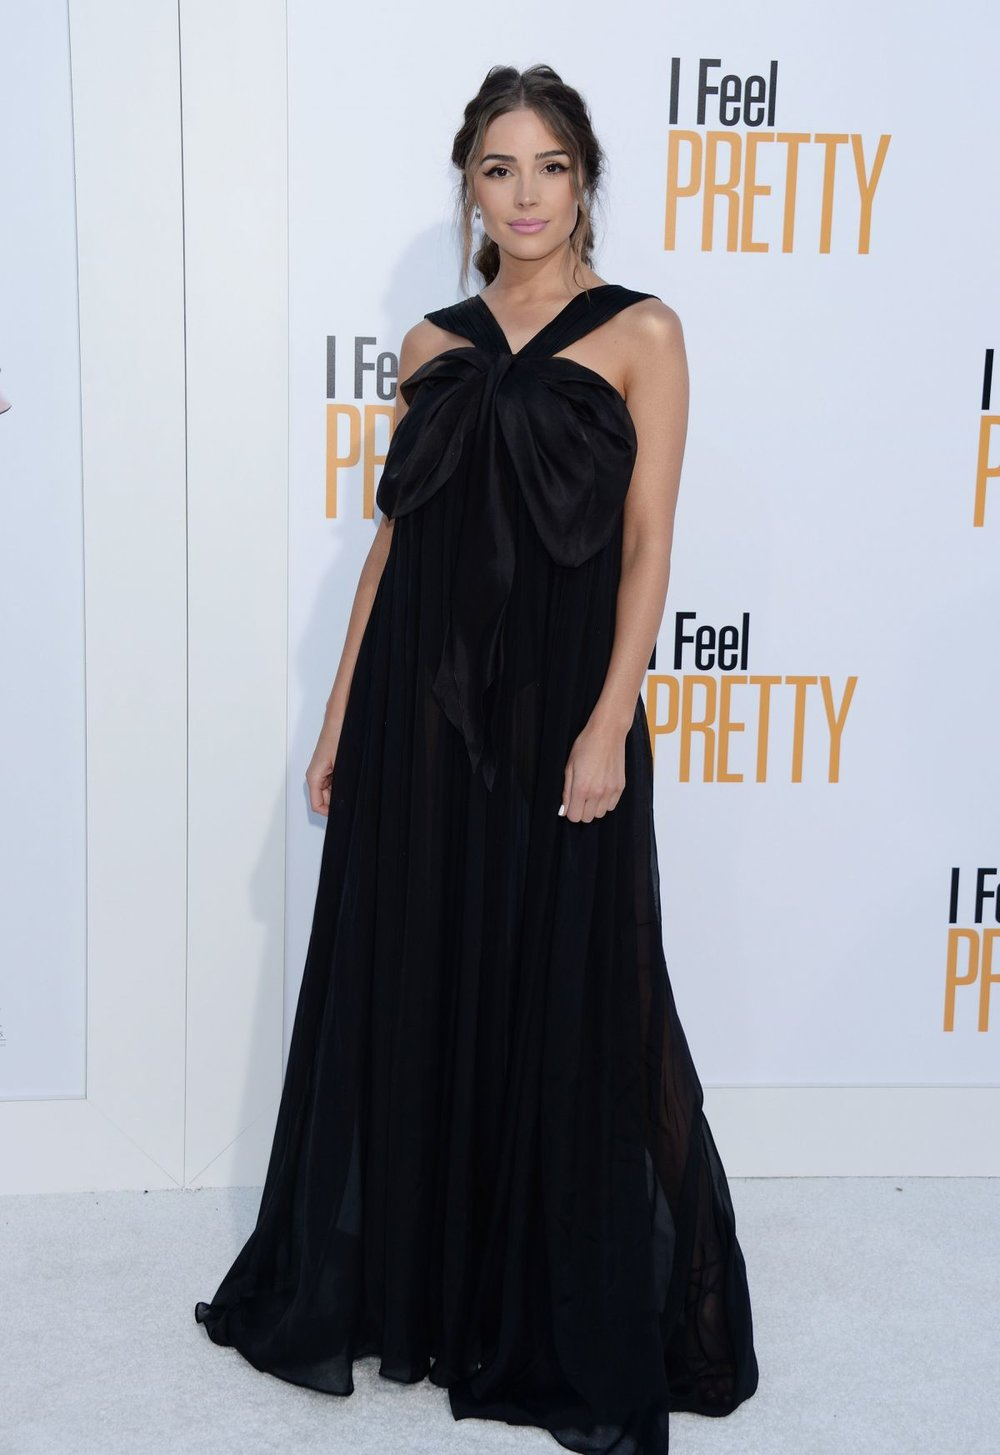 olivia-culpo-at-i-feel-pretty-premiere-in-los-angeles-10.jpg